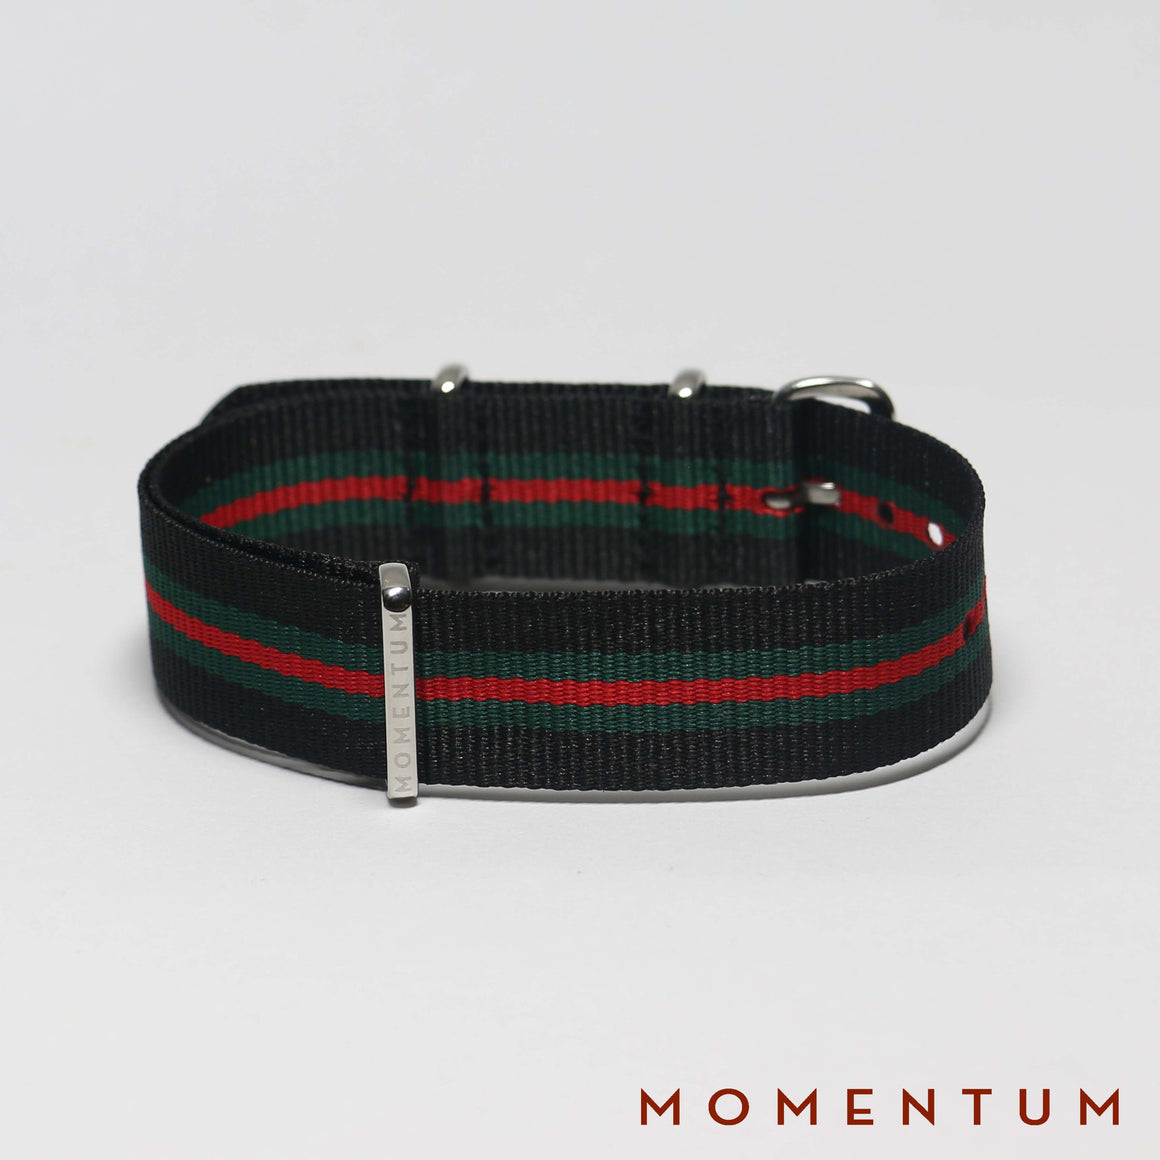 Nato Strap Black - Green & Red Striped - Momentum Dubai